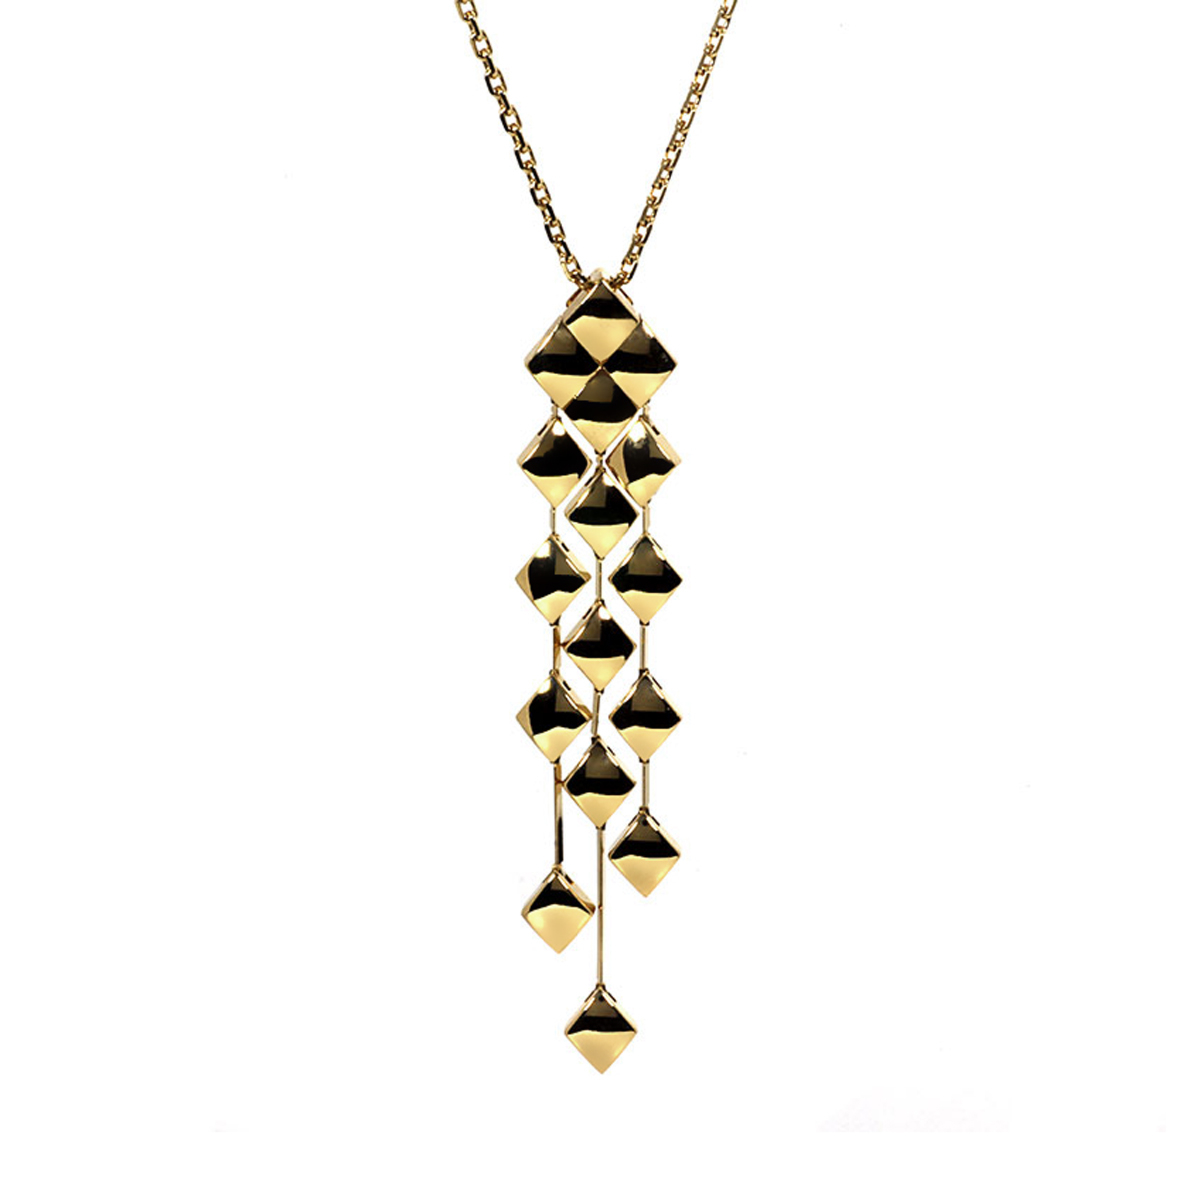 Chanel Matelasse Yellow Gold Quilted Necklace